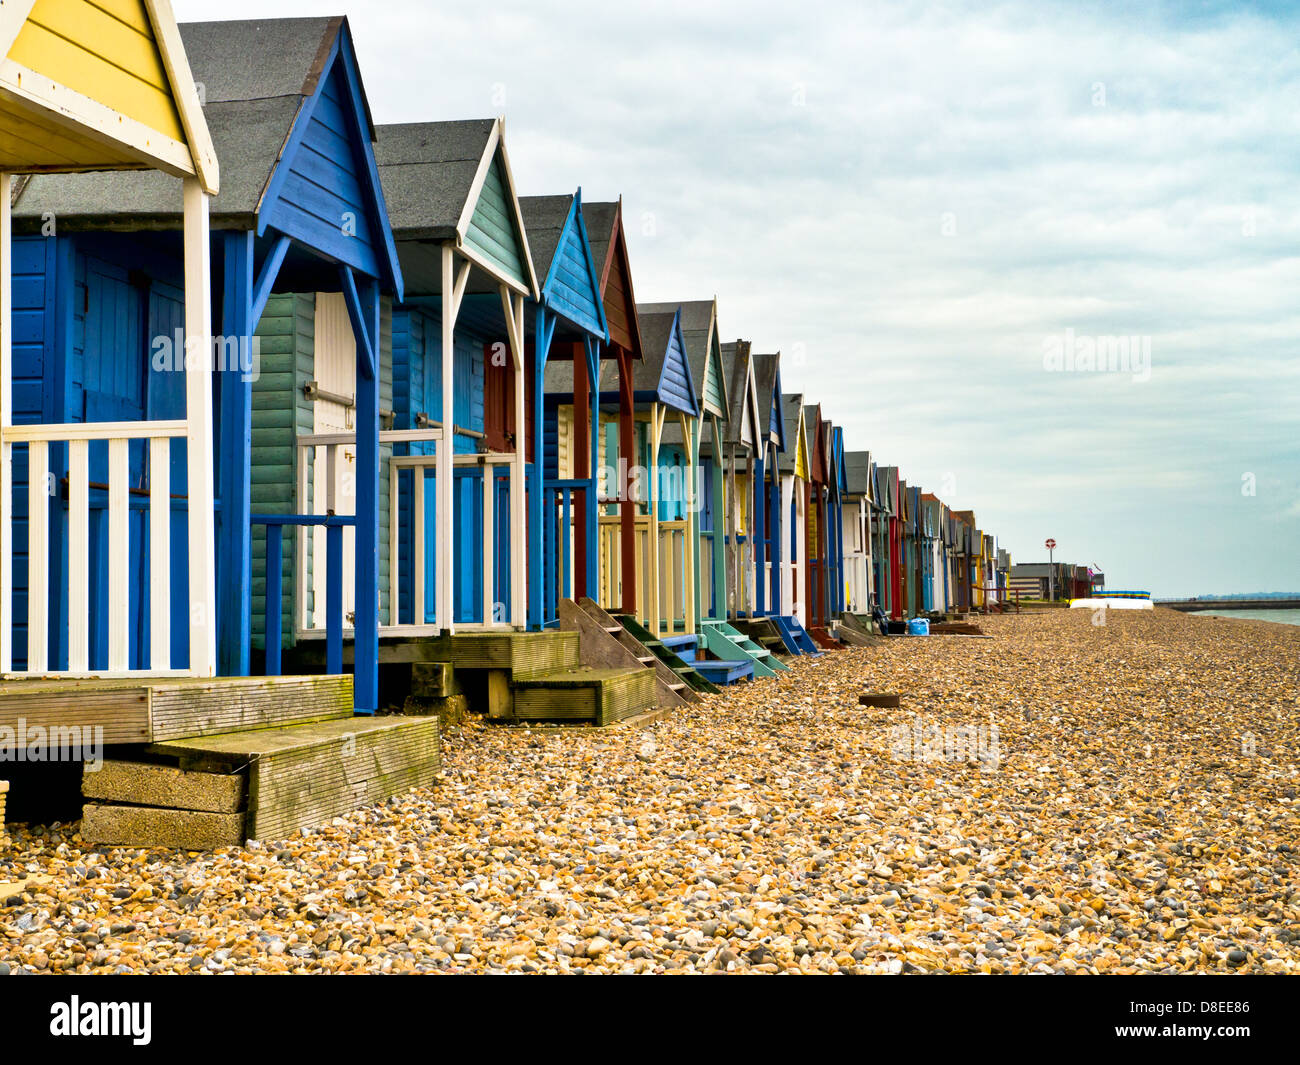 Beach huts in Herne Bay, Kent - Stock Image